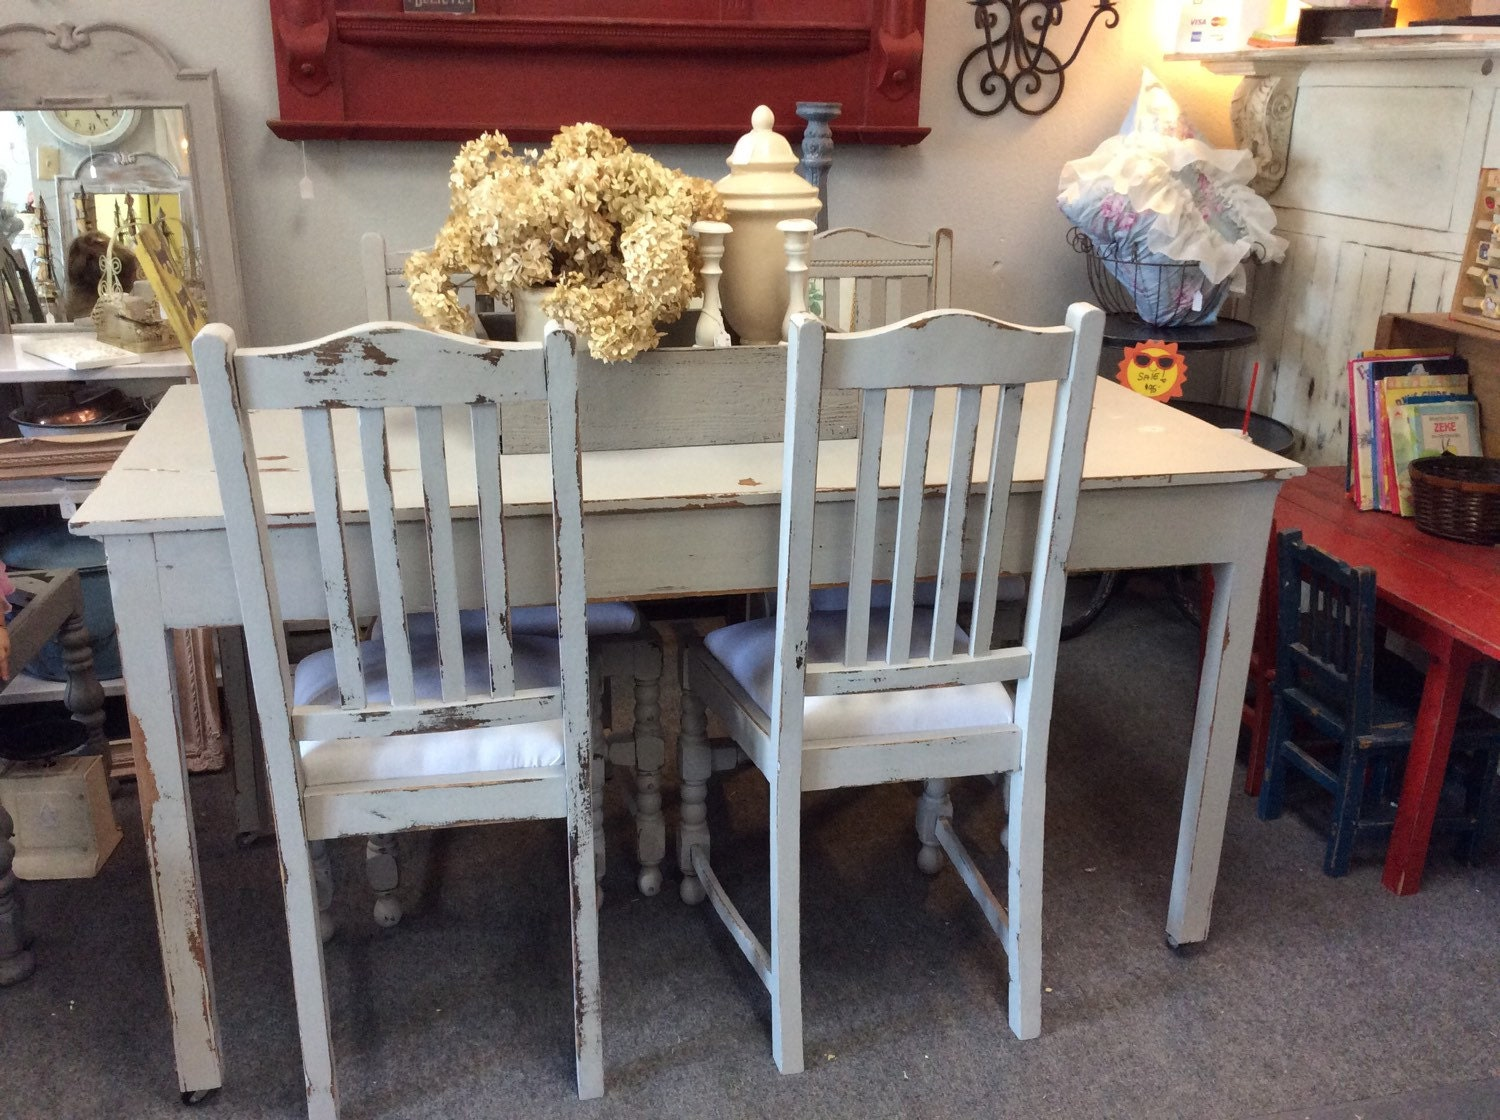 Amazing Light Gray Antique Farmhouse Kitchen Dining Table on Casters w 4 Cha